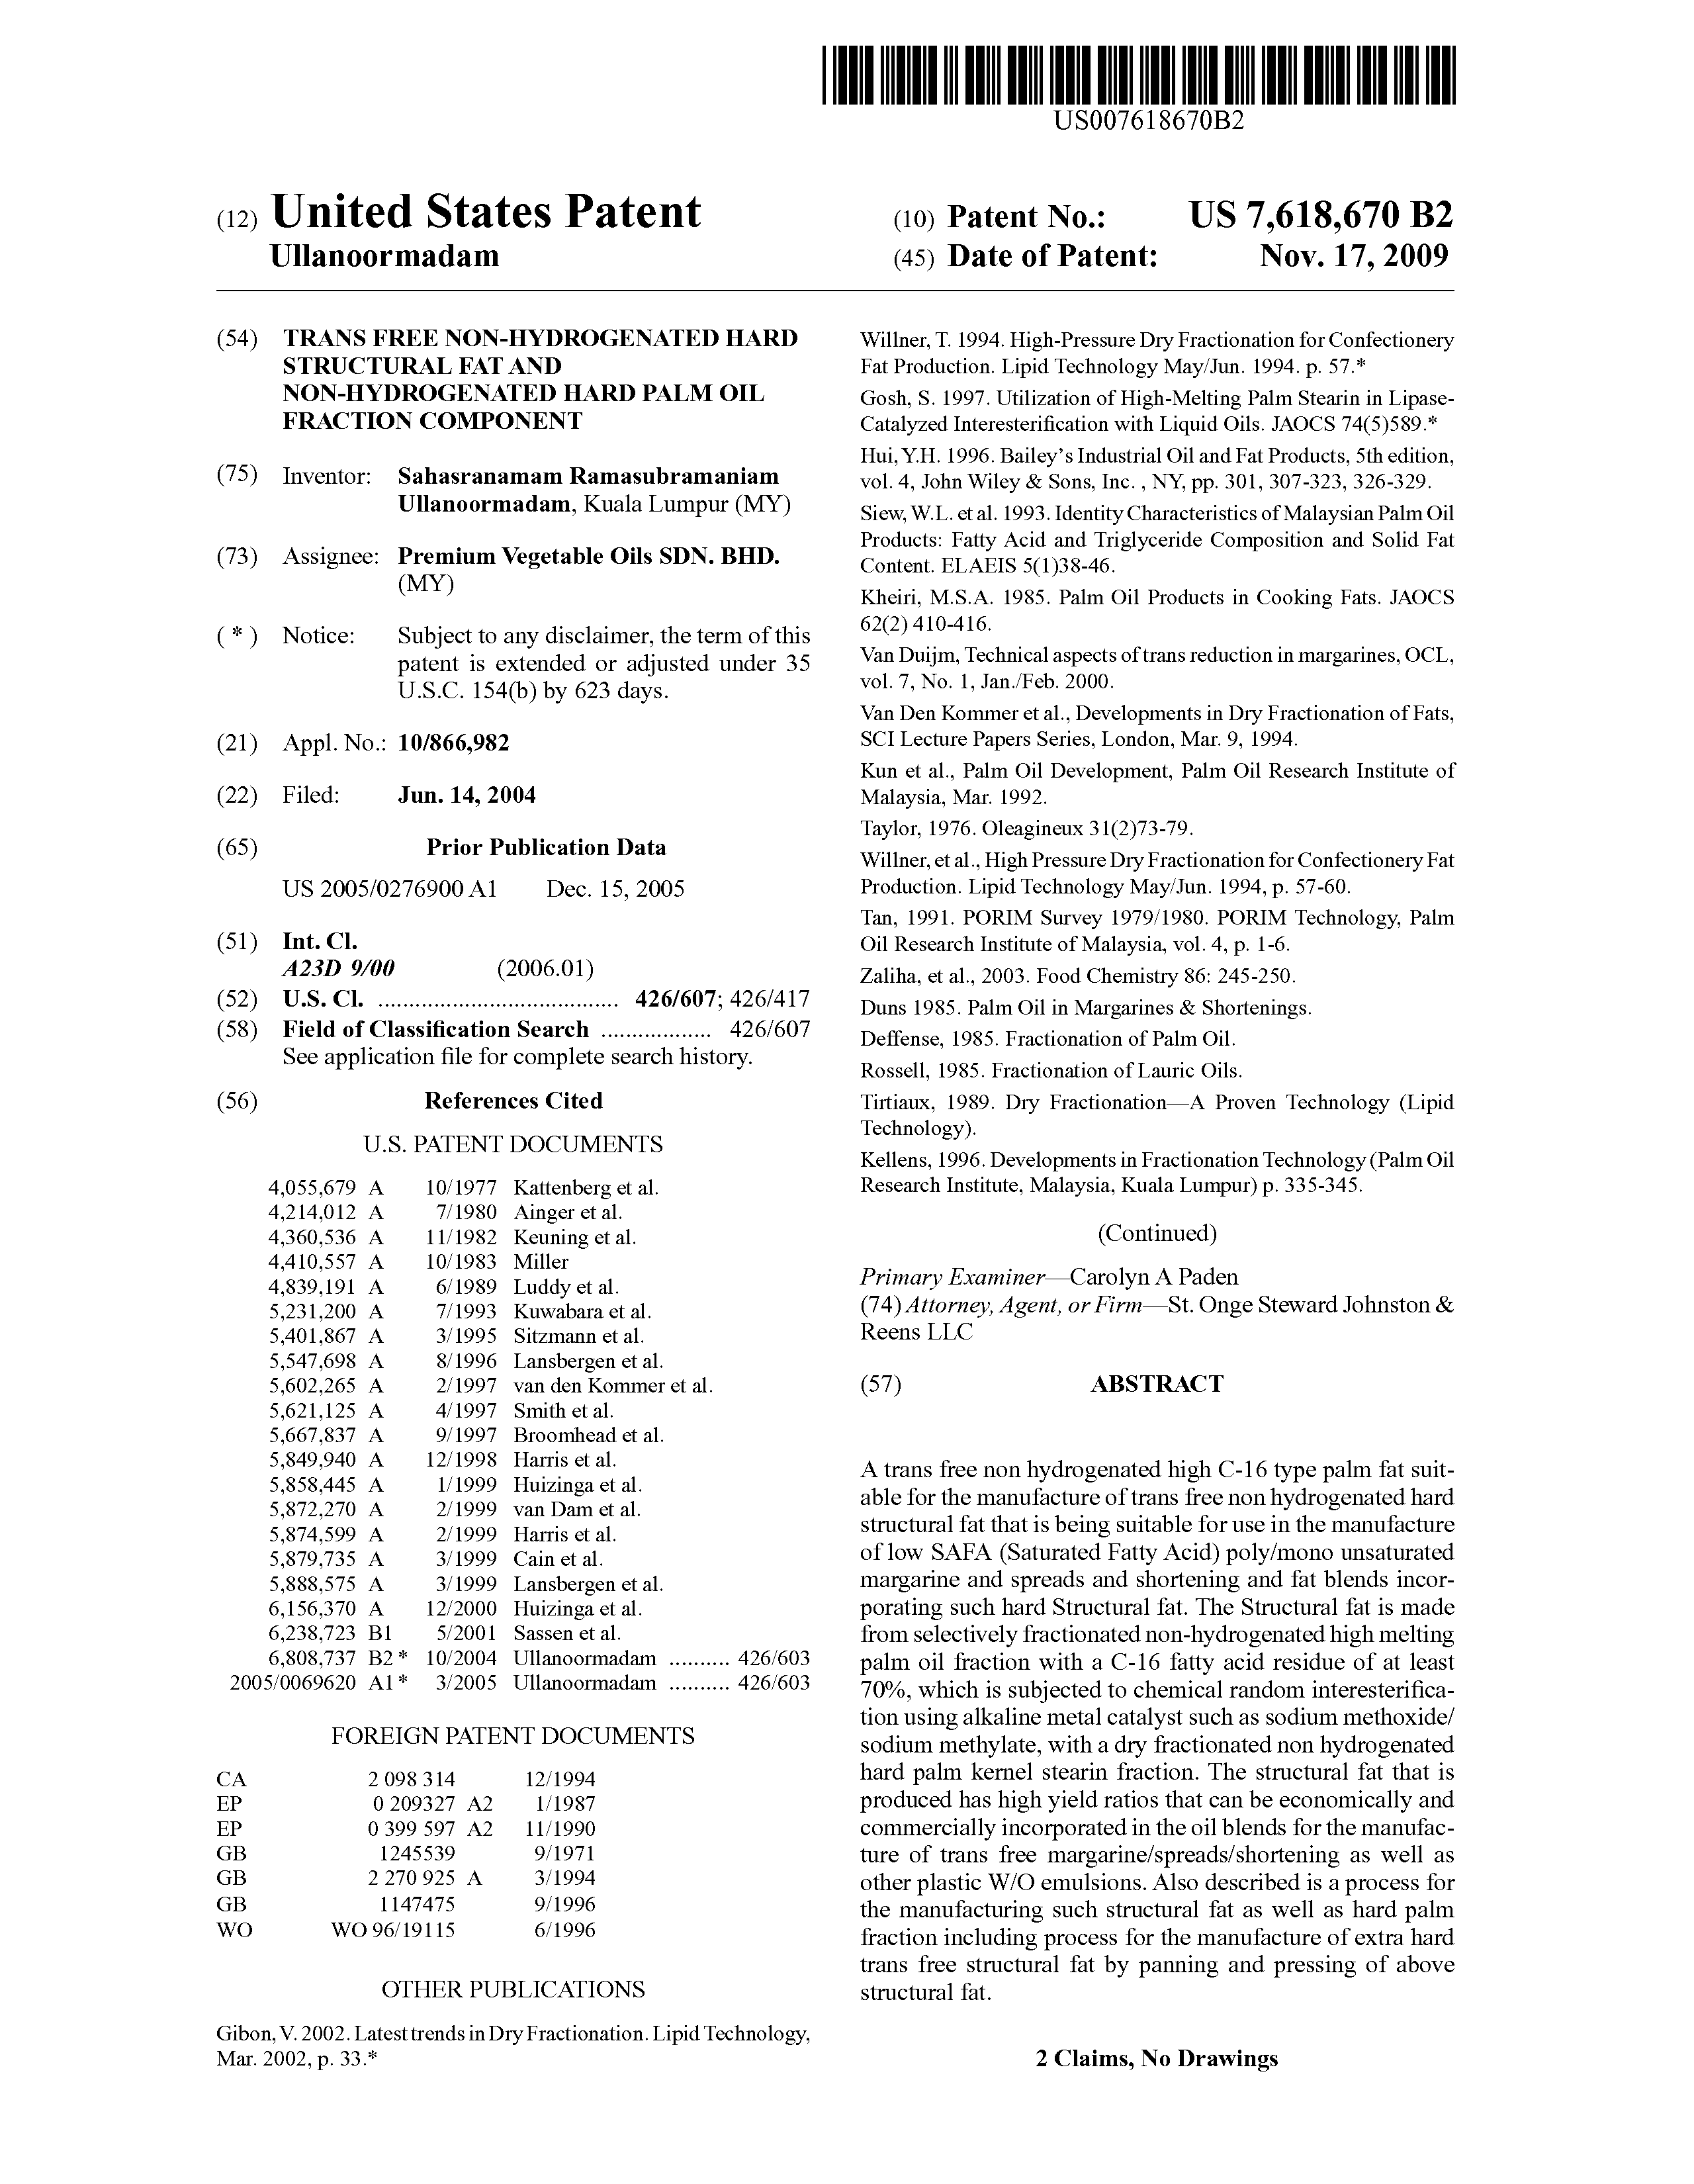 US 7618670 B2 - Trans Free Non-hydrogenated Hard Structural